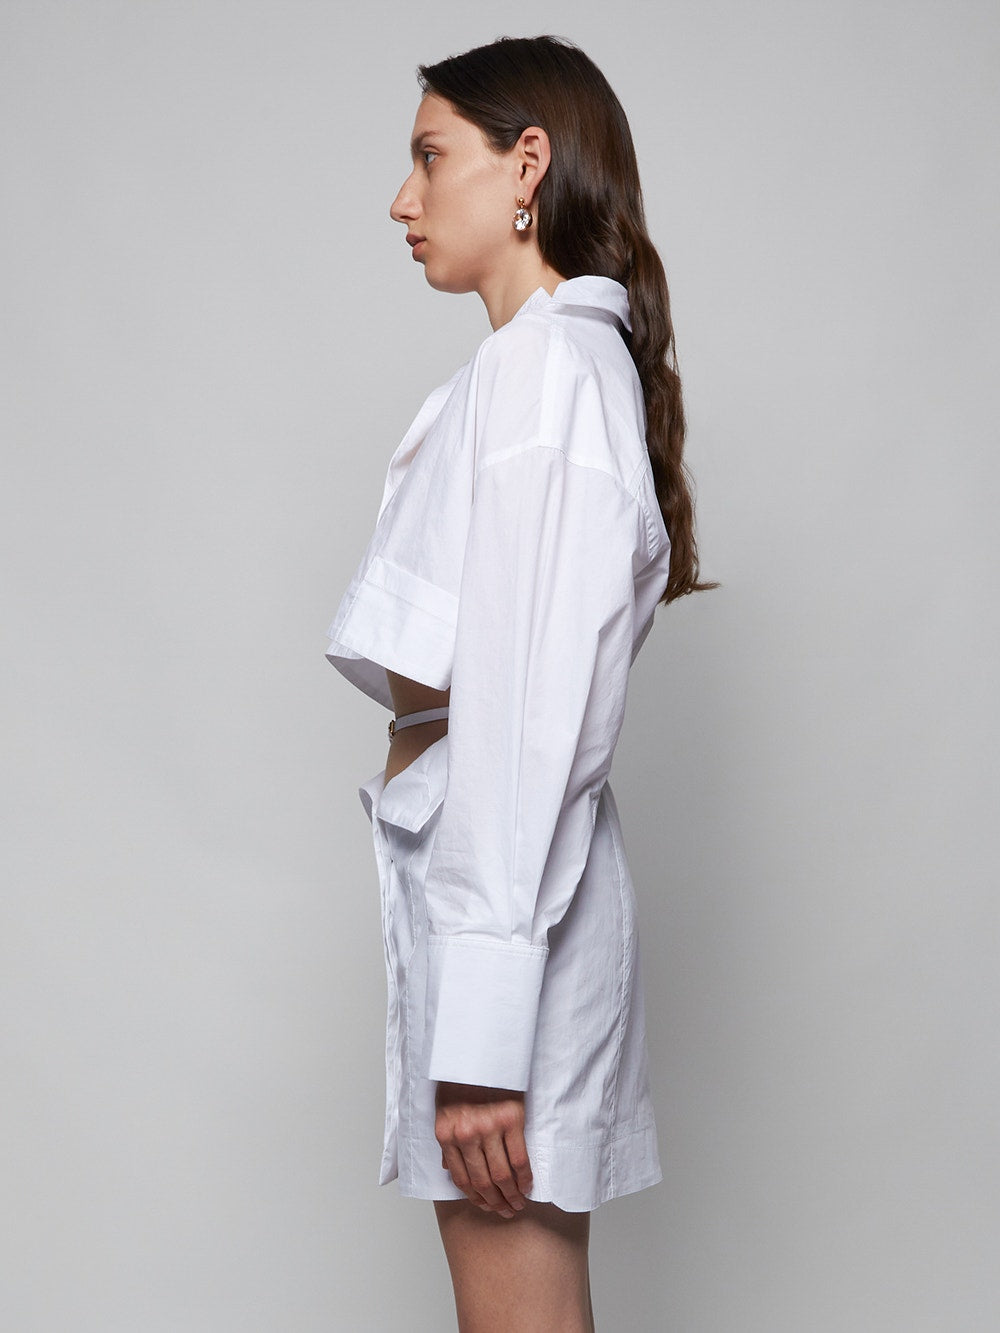 White La Robe Terraria Shirt Dress